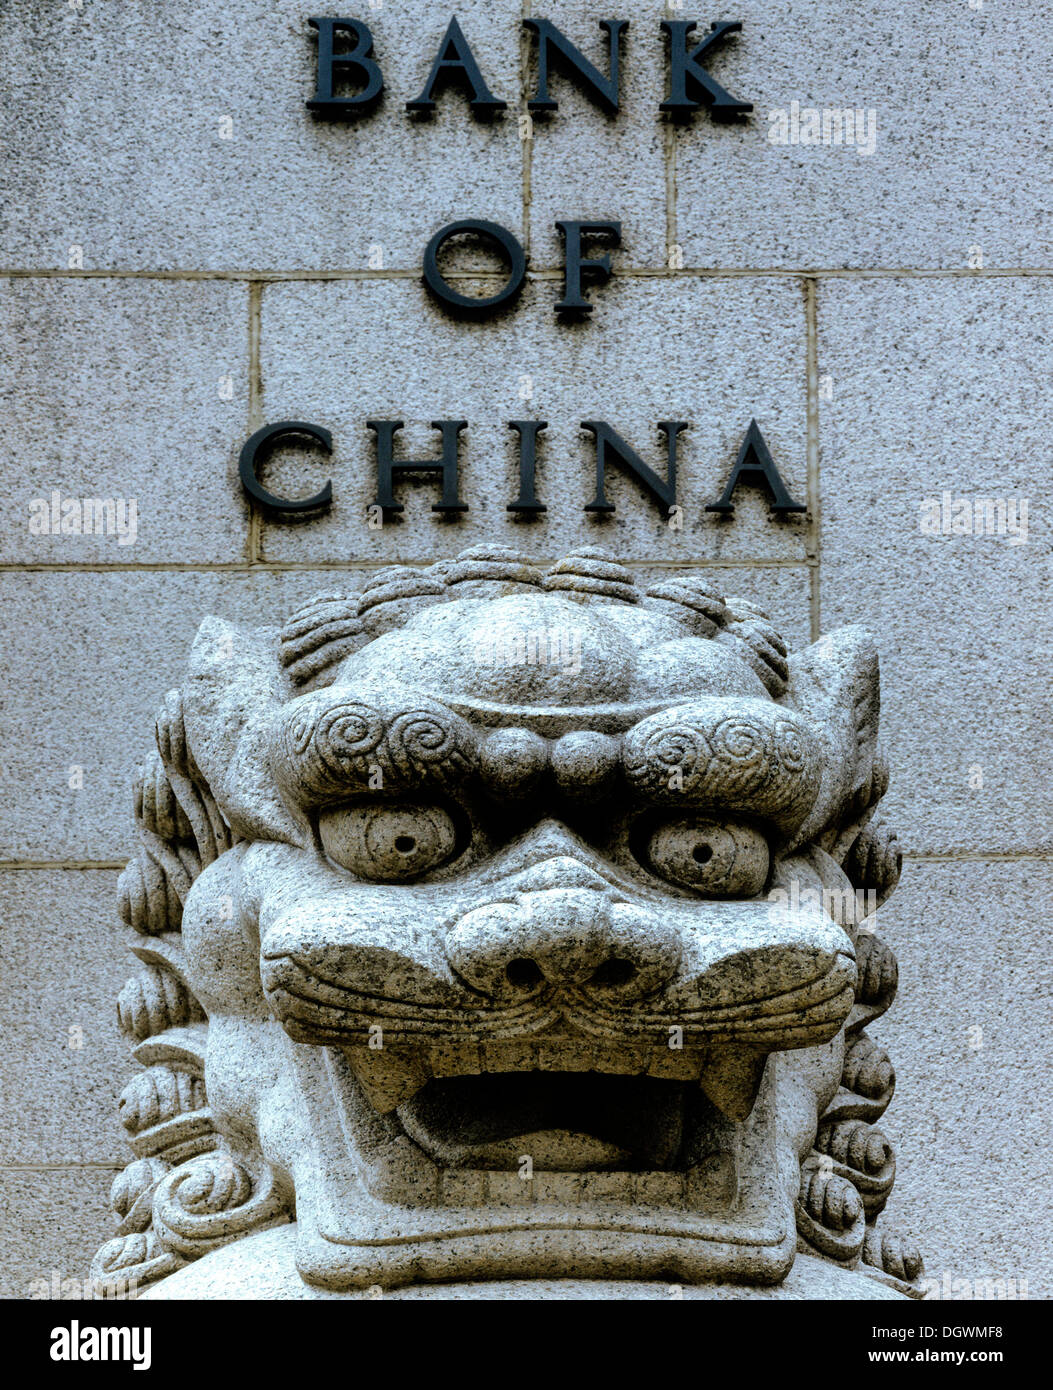 Lion sculpture in stone in front of the Bank of China, Central District, Victoria Island, Central District, Hong Kong - Stock Image